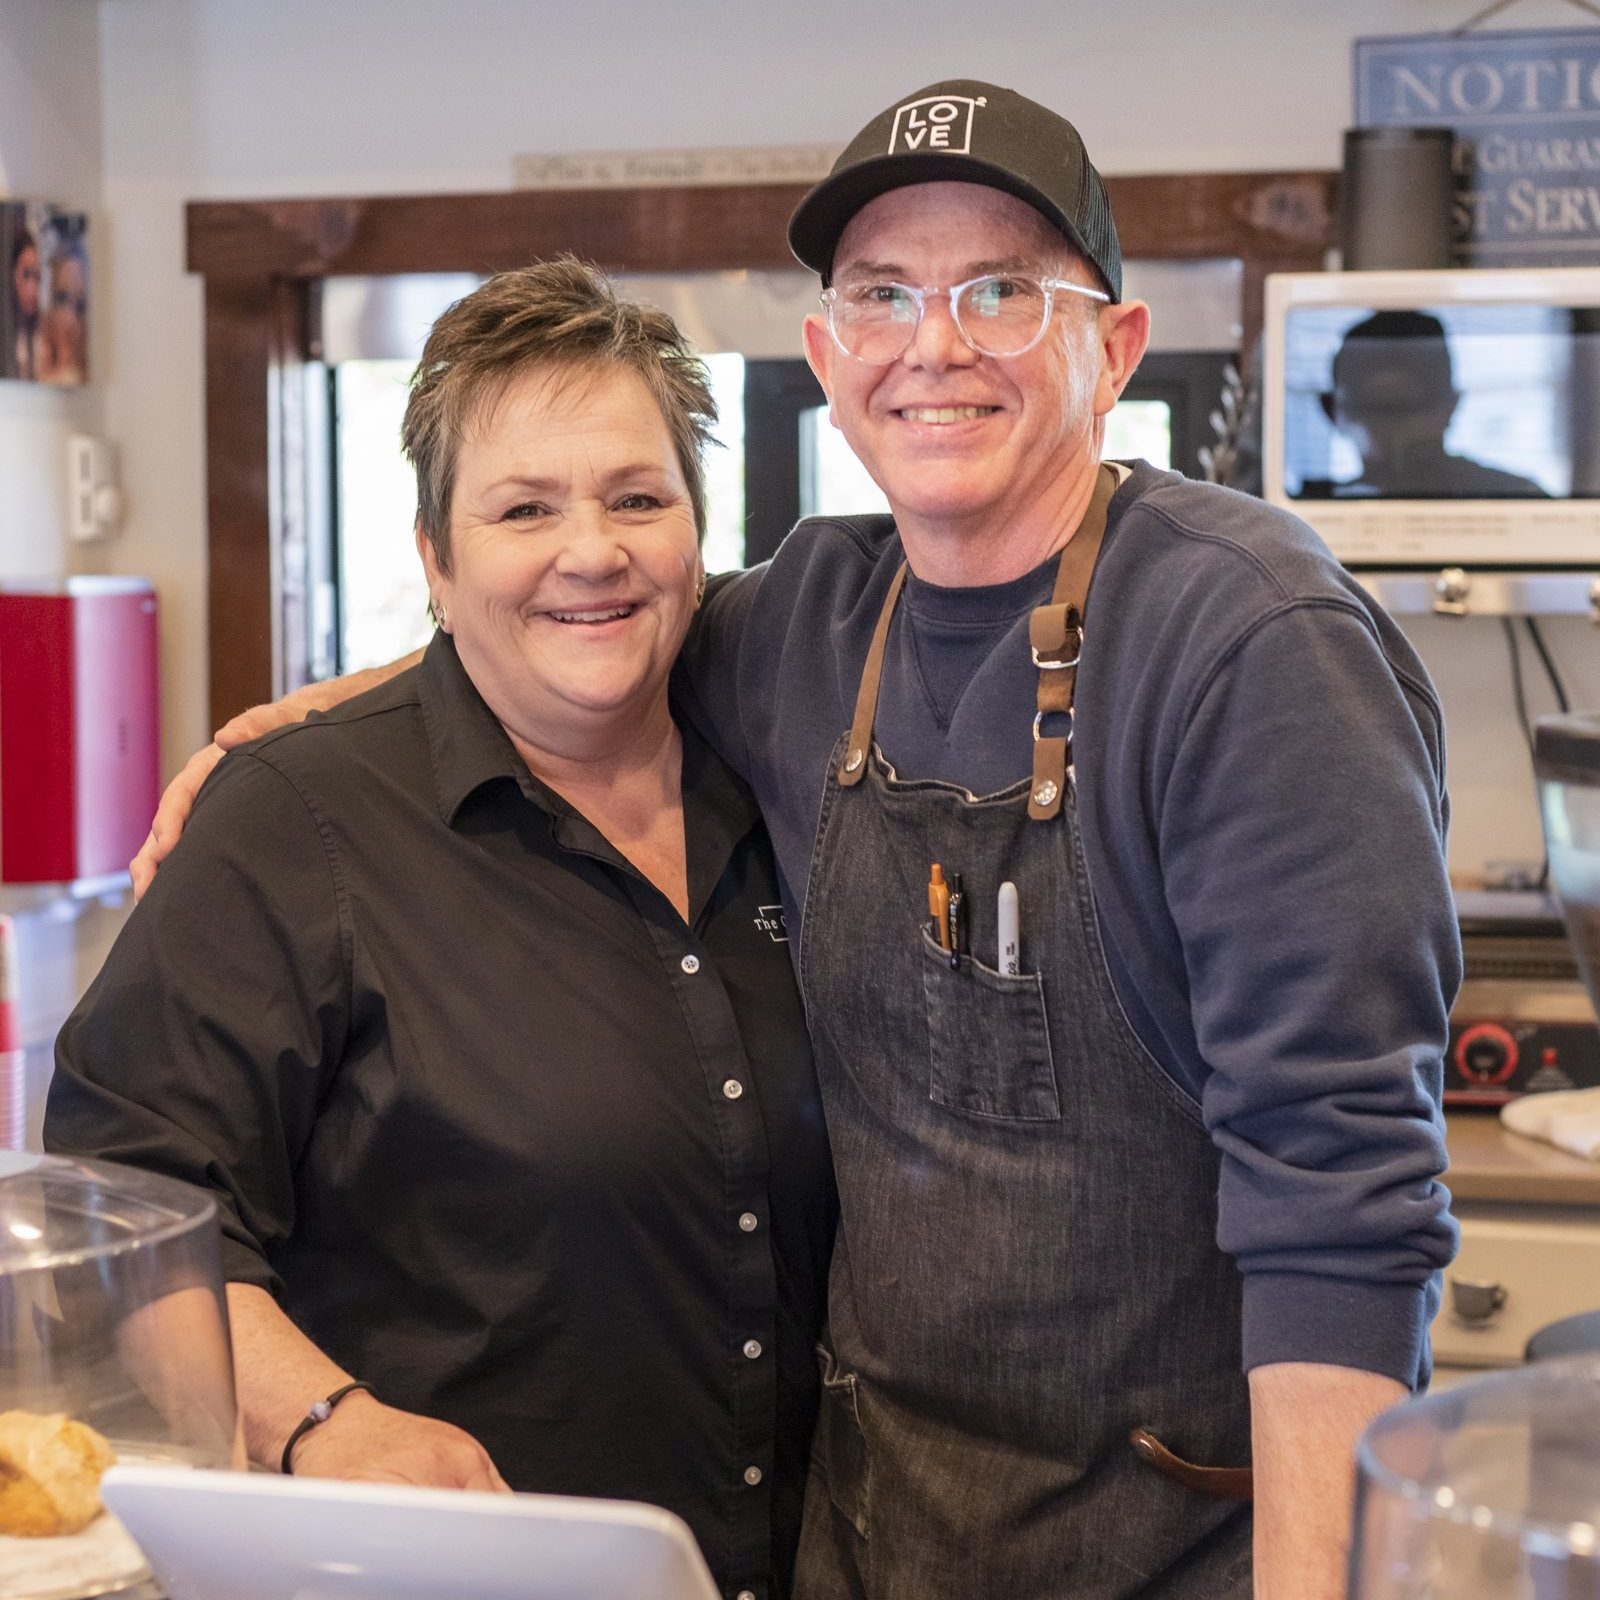 Geralyn and David Hickey, owners of The Coffee Potter